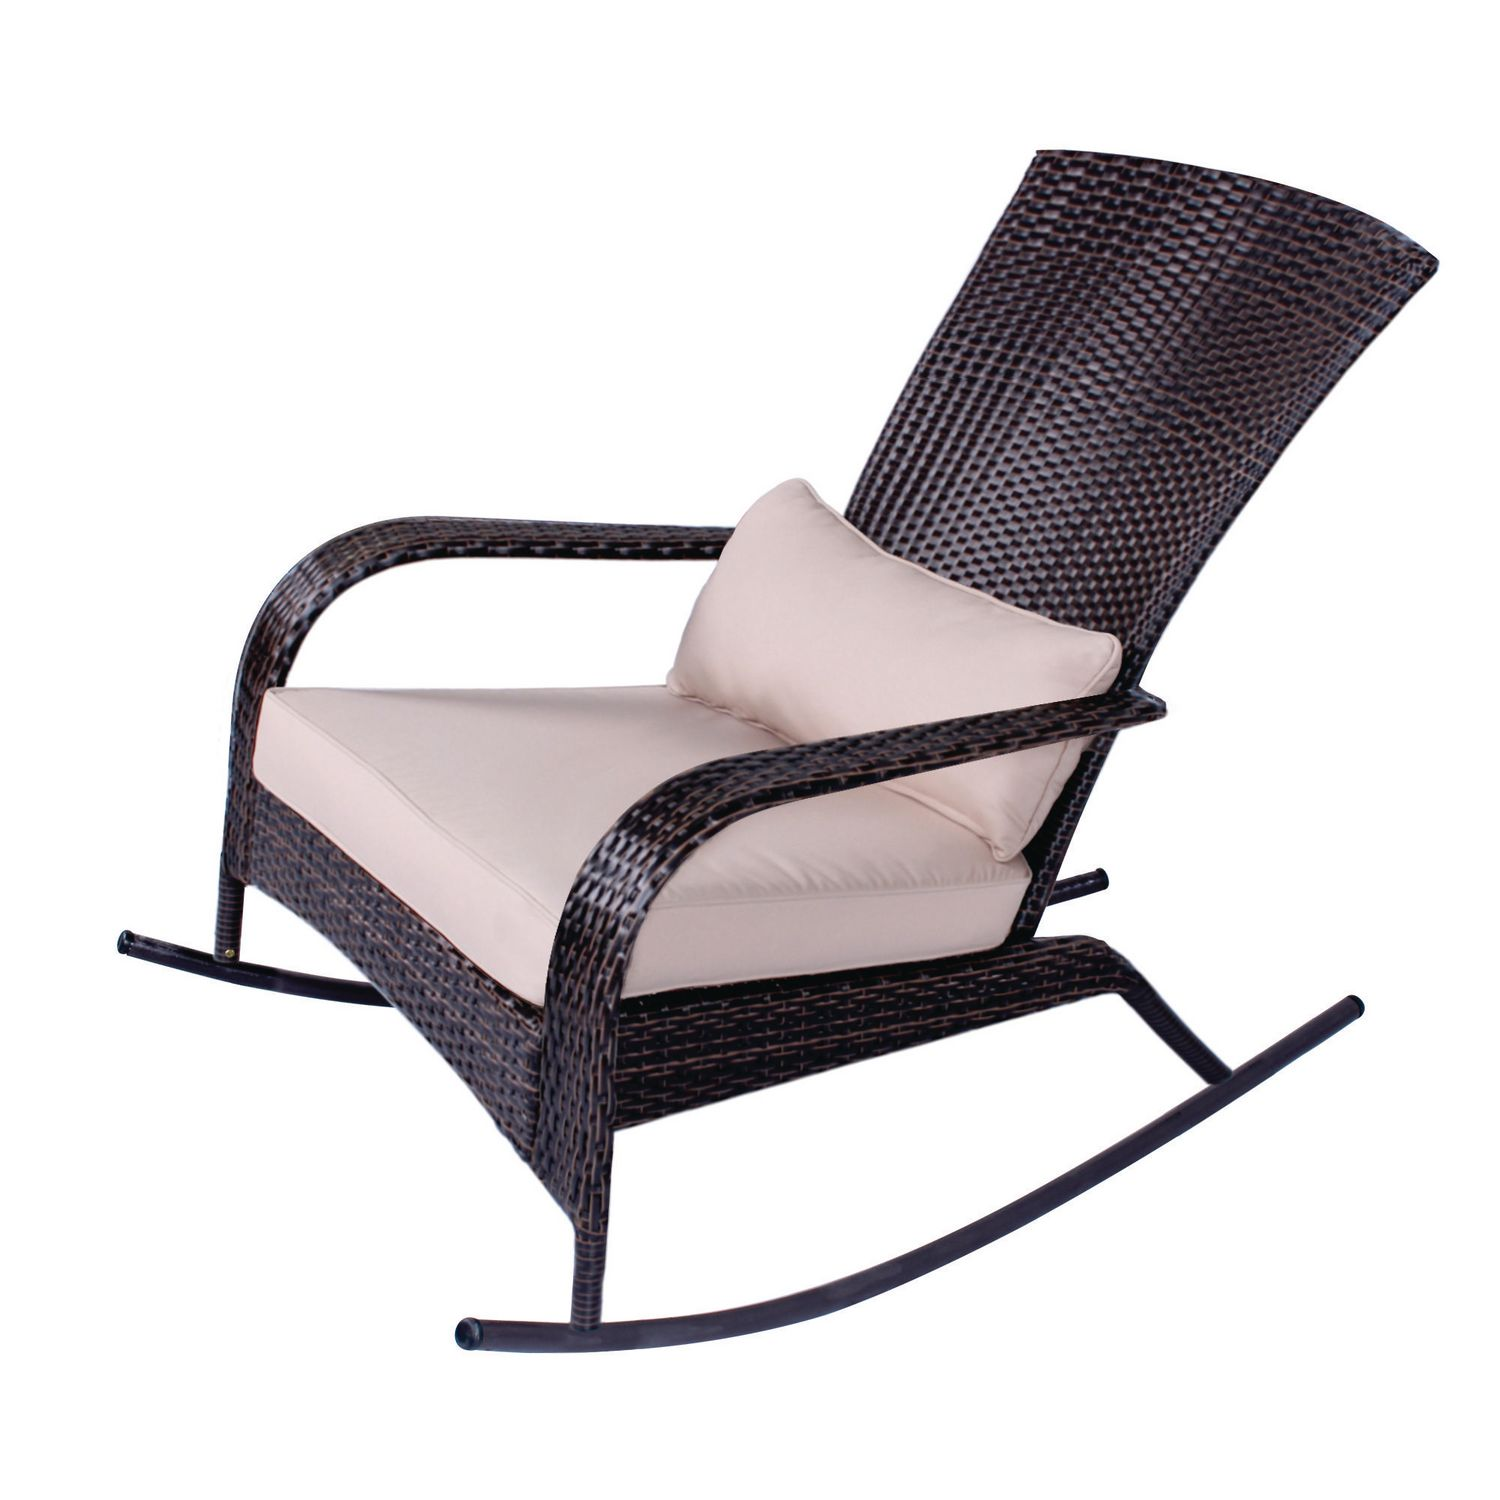 living zenica brick item furniture rocking chairs to chair room click image product change the